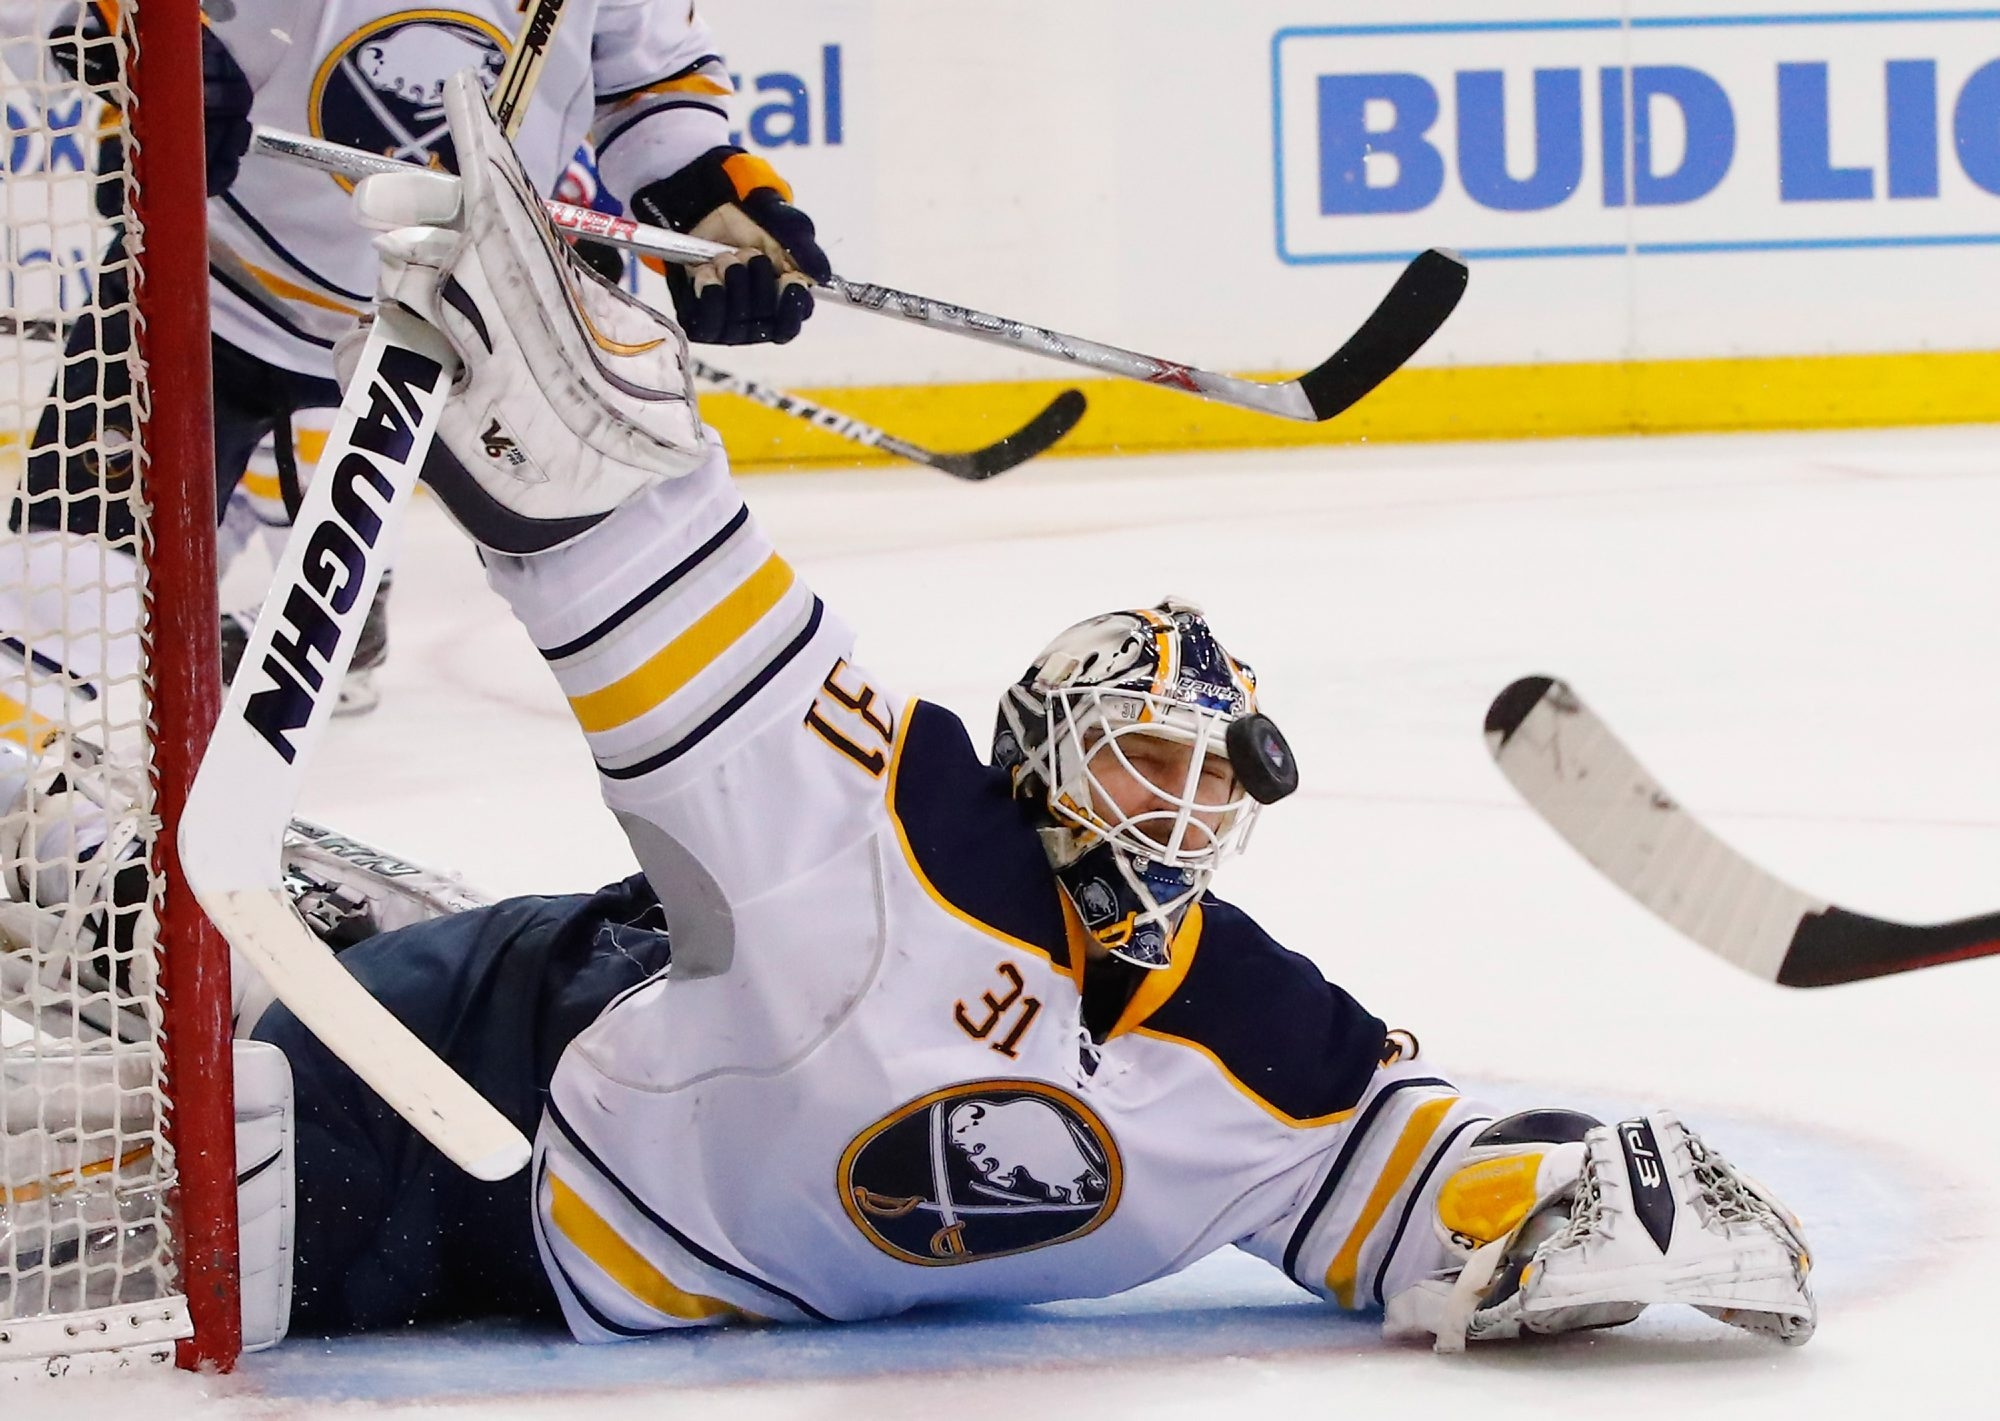 Chad Johnson keeps his eye on the puck in making a save for the Sabres in their win over the Rangers on Saturday.